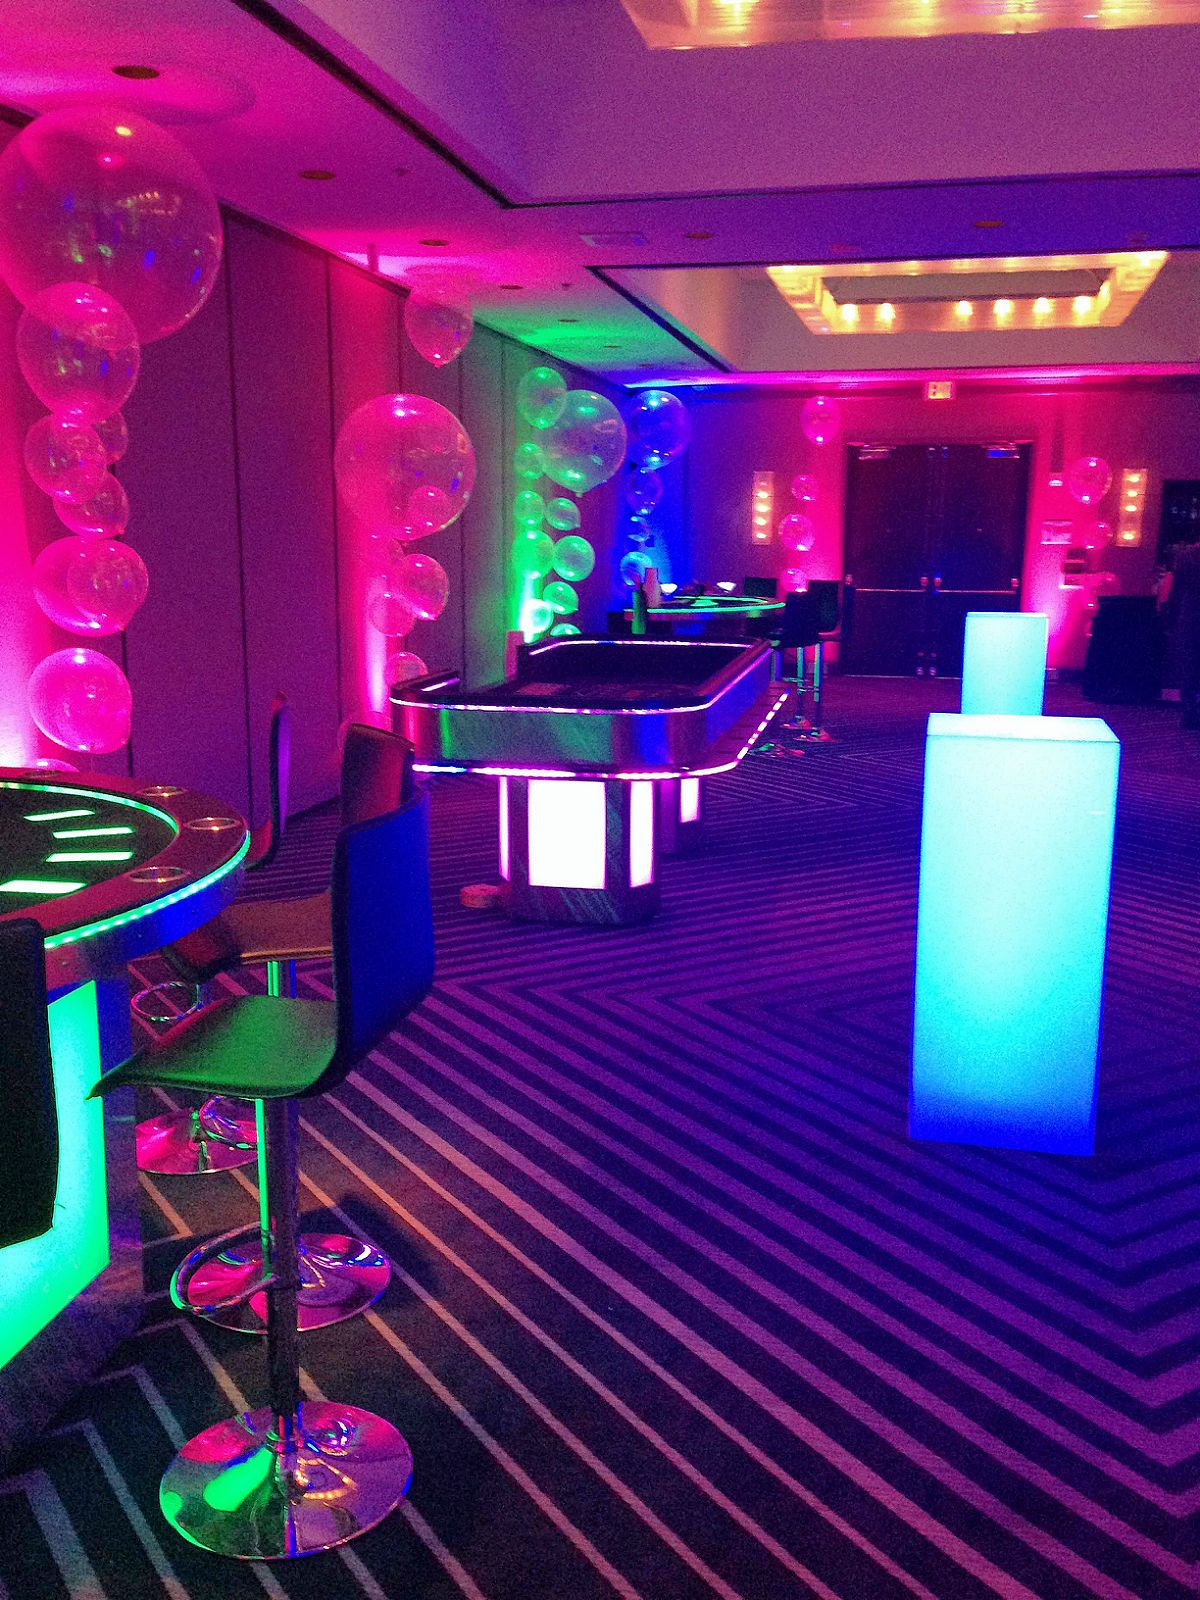 Our Founder S Ballroom Styled Into A Casino Neon Aesthetic Neon Lighting